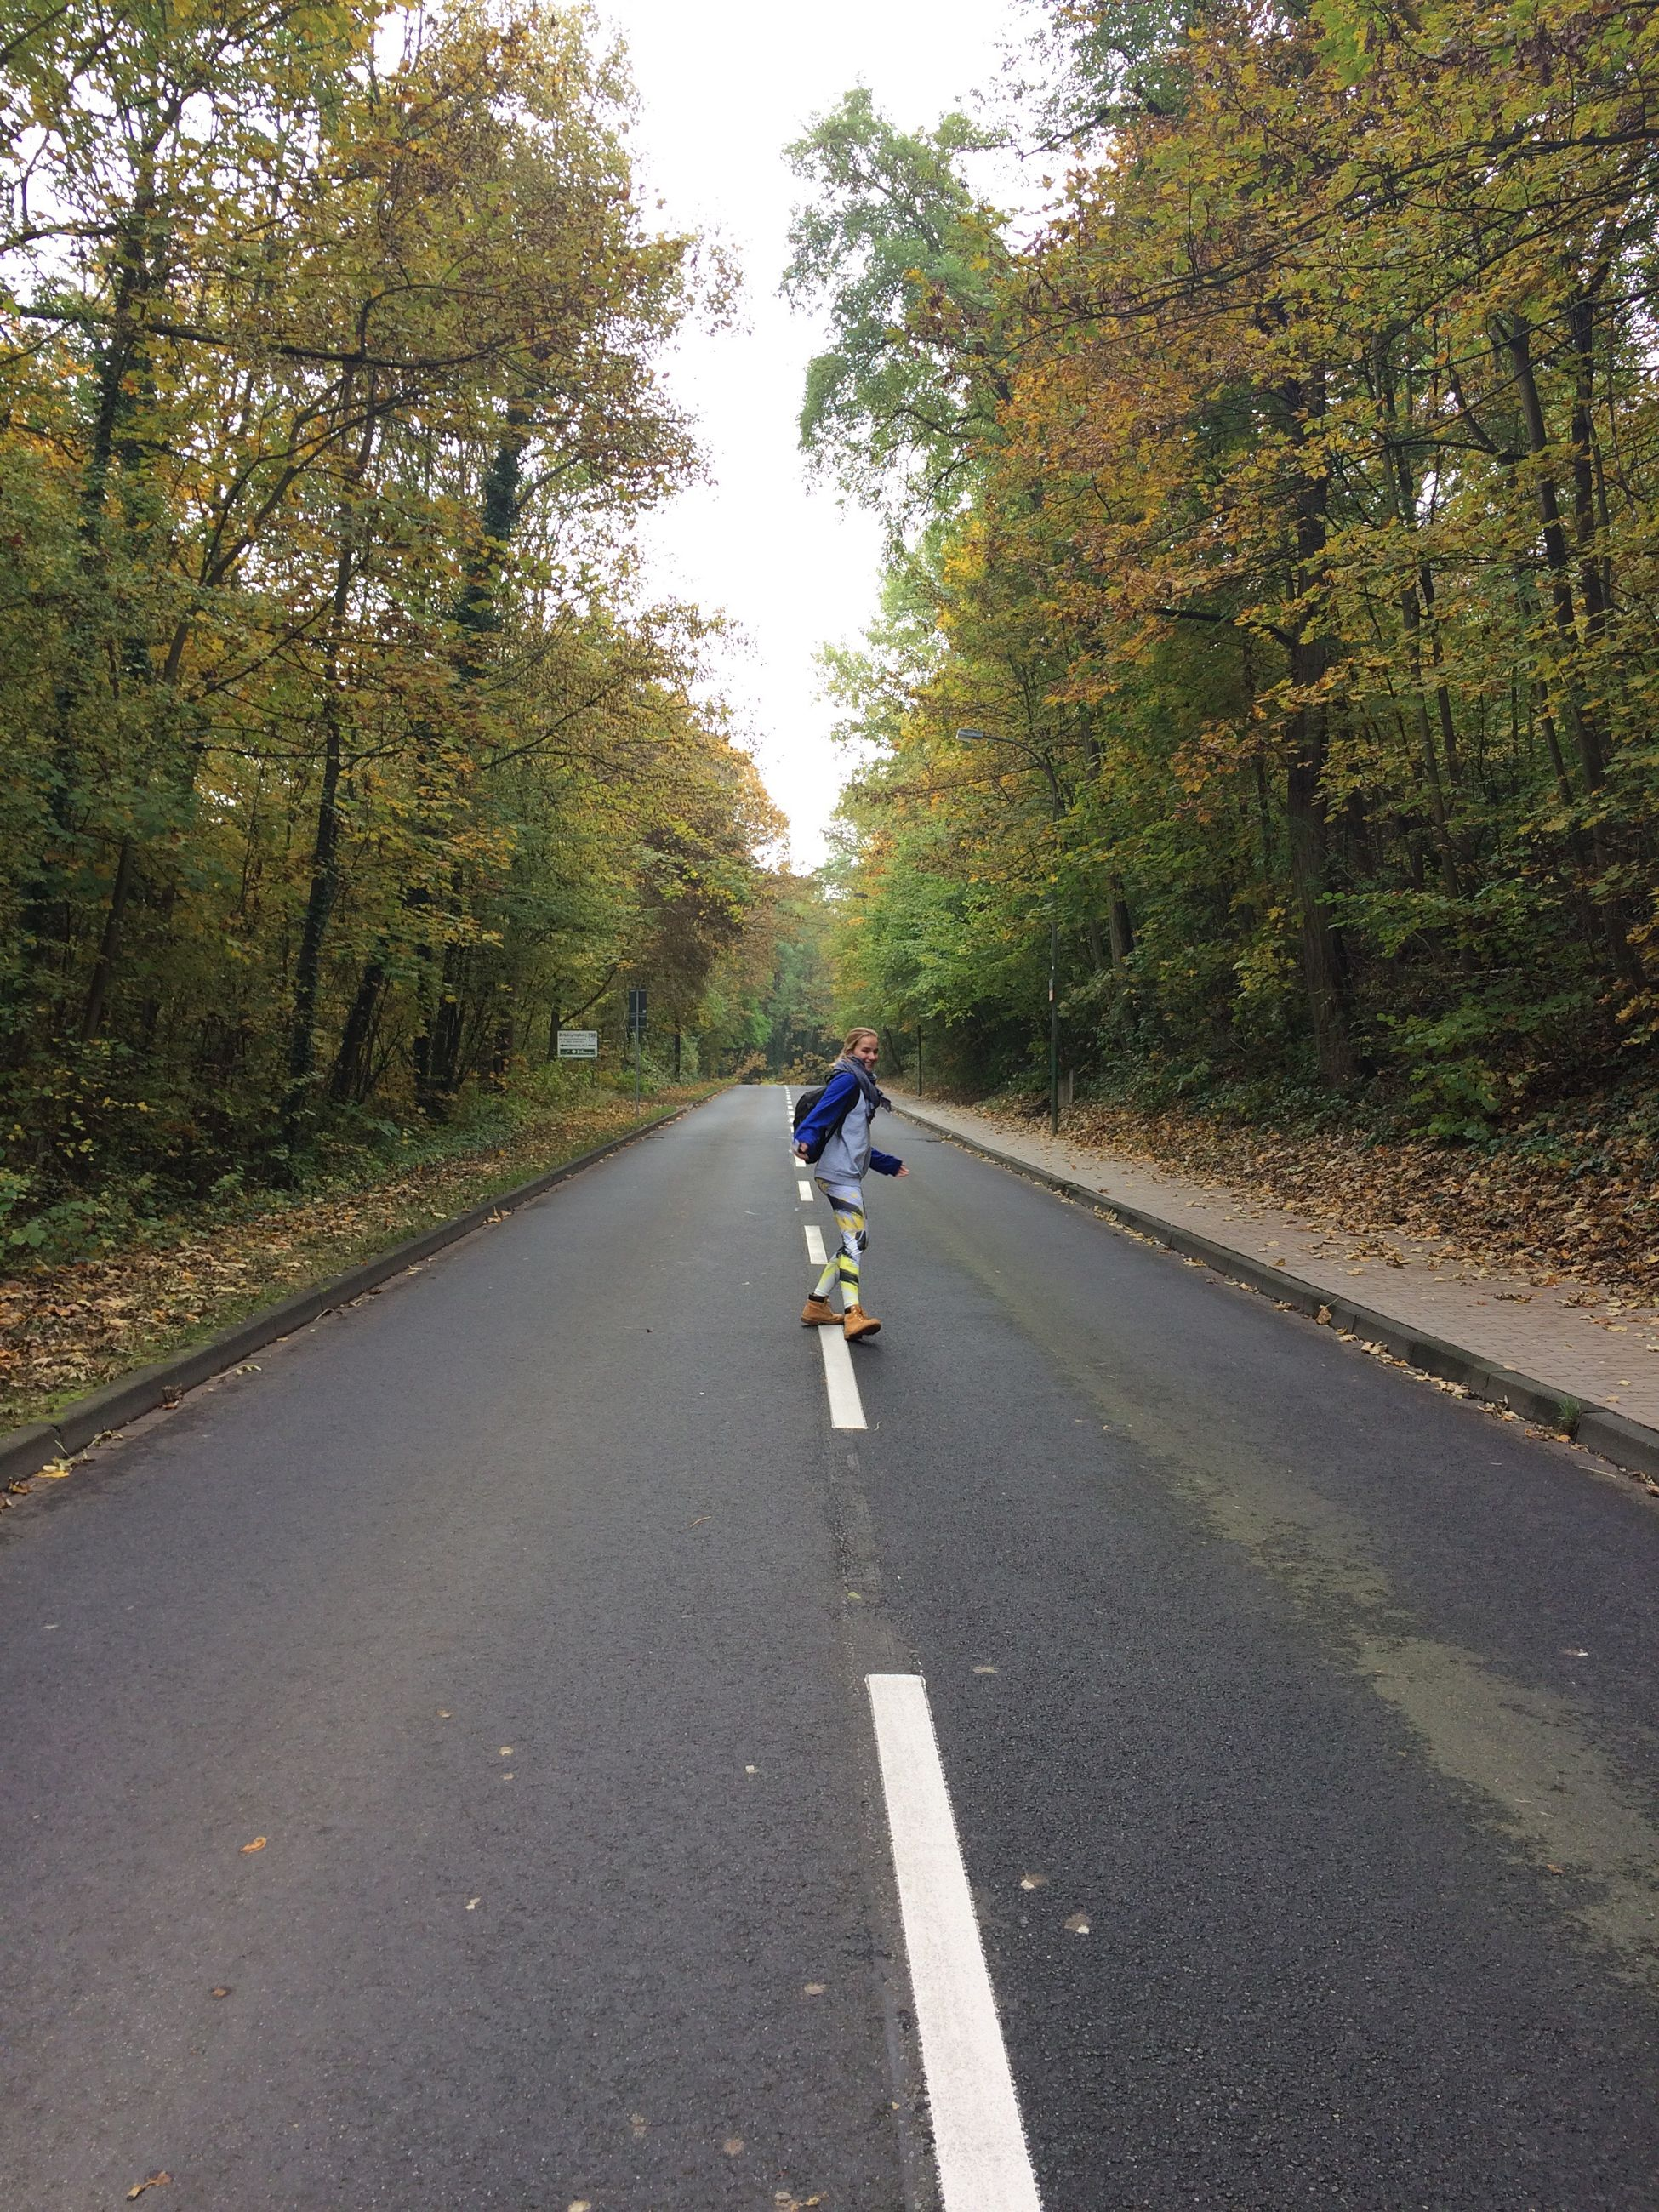 road, full length, tree, cycling, transportation, bicycle, riding, people, outdoors, one person, day, adults only, adult, only men, young adult